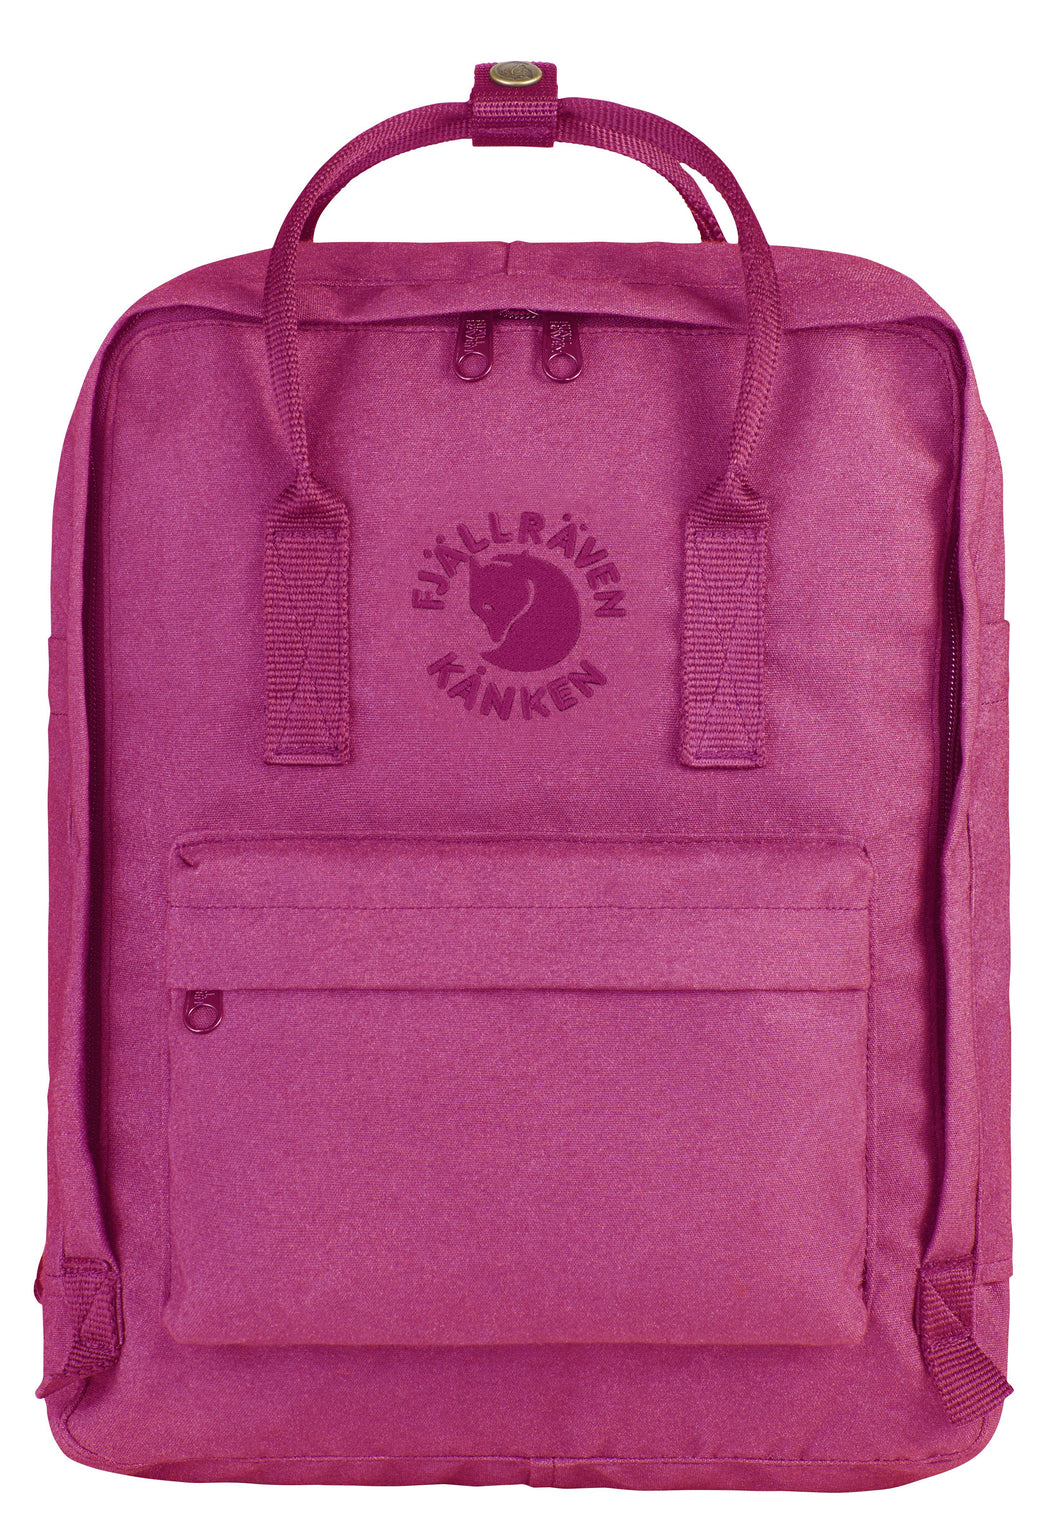 Fjallraven Re-Kanken Rugzak Pink Rose-Recyclt.com